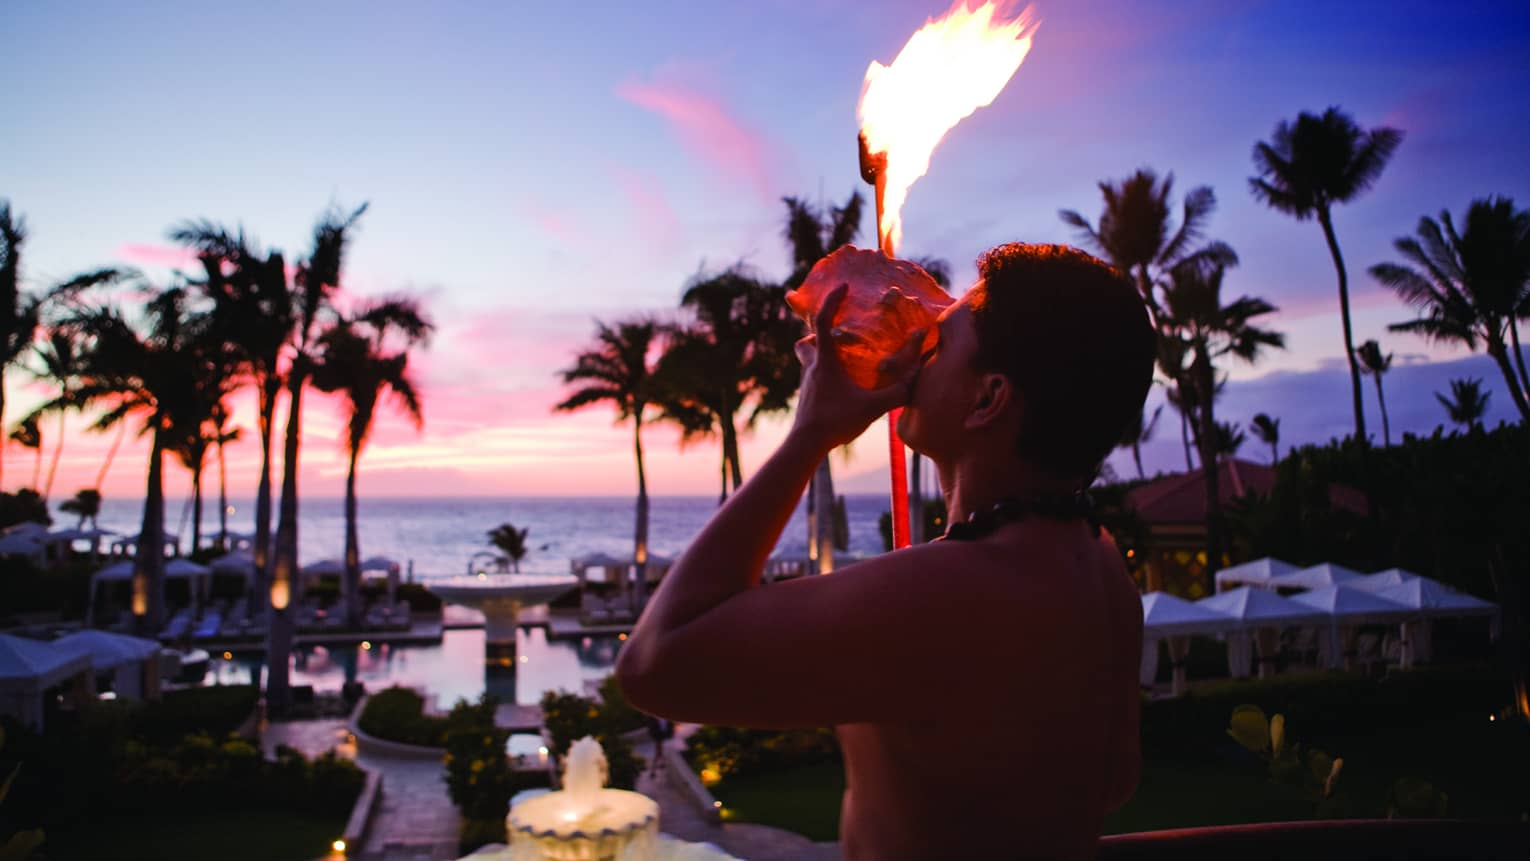 A staff member lights a torch with a view of the ocean